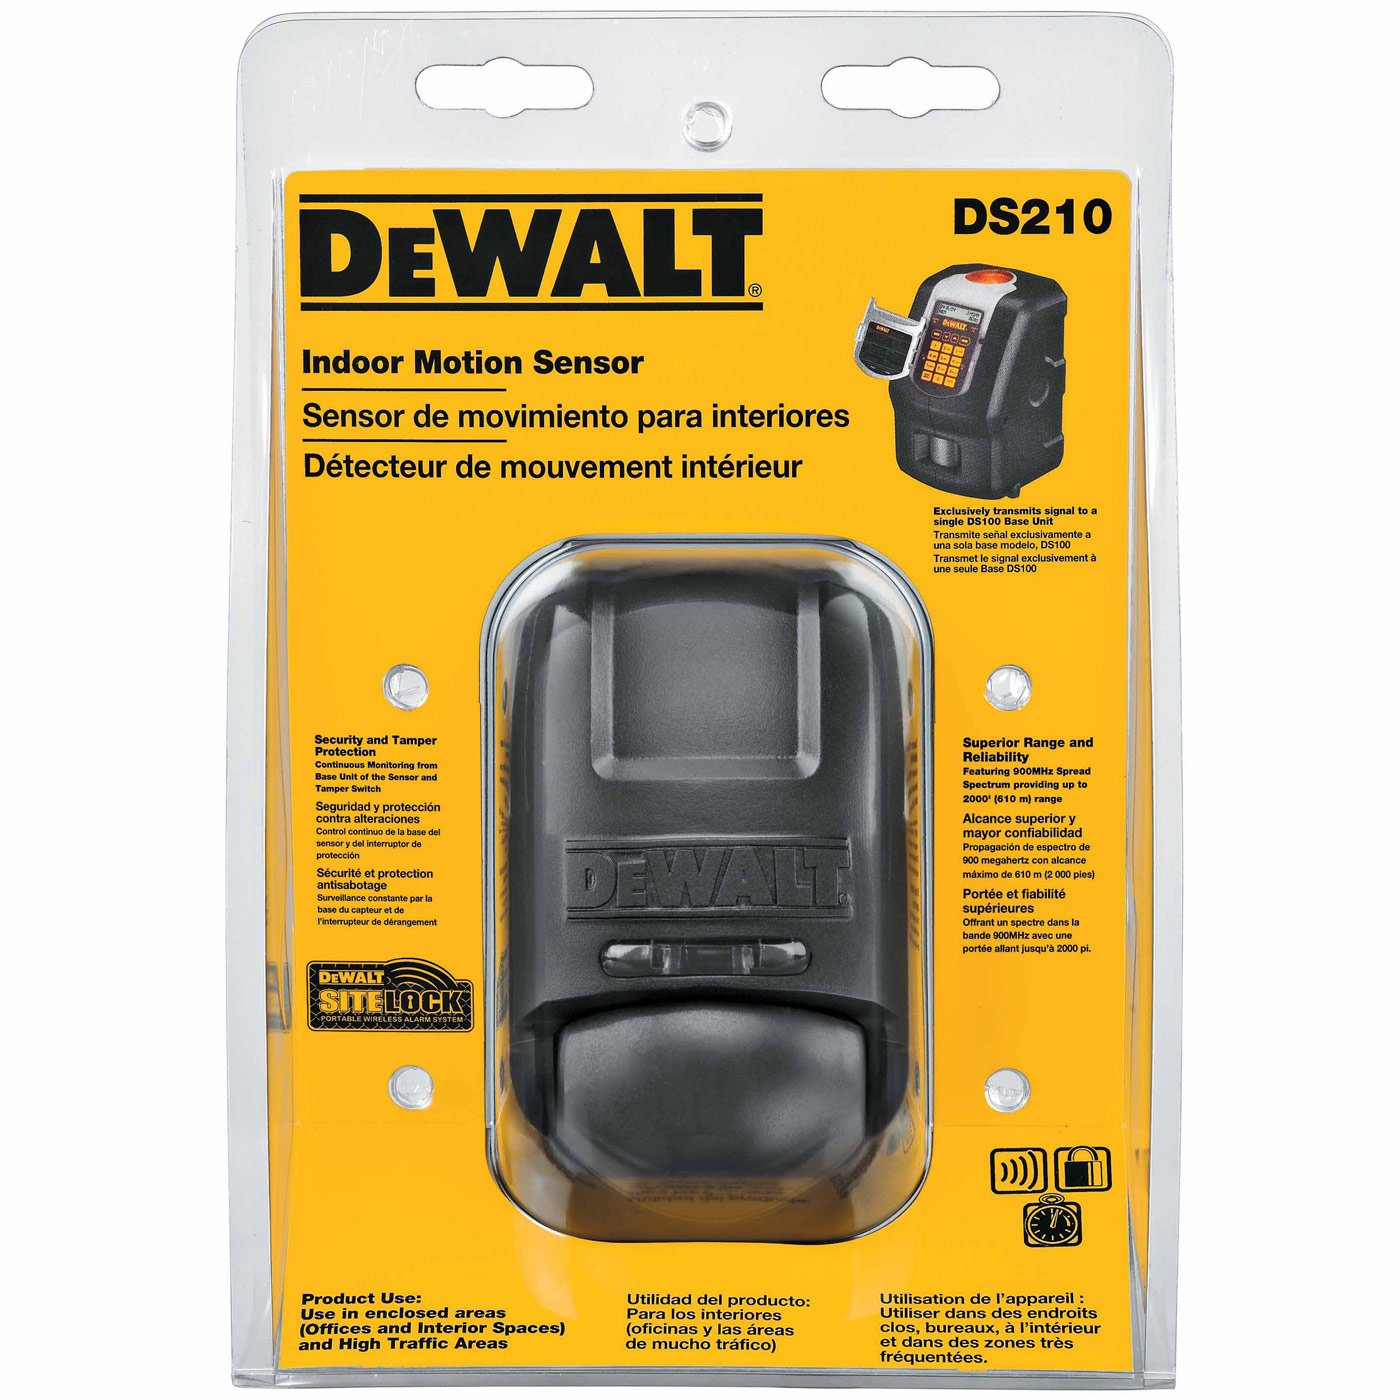 Amazon.com: DeWalt DS210 Indoor Motion Sensor - PIR (Passive Infrared): Home Improvement